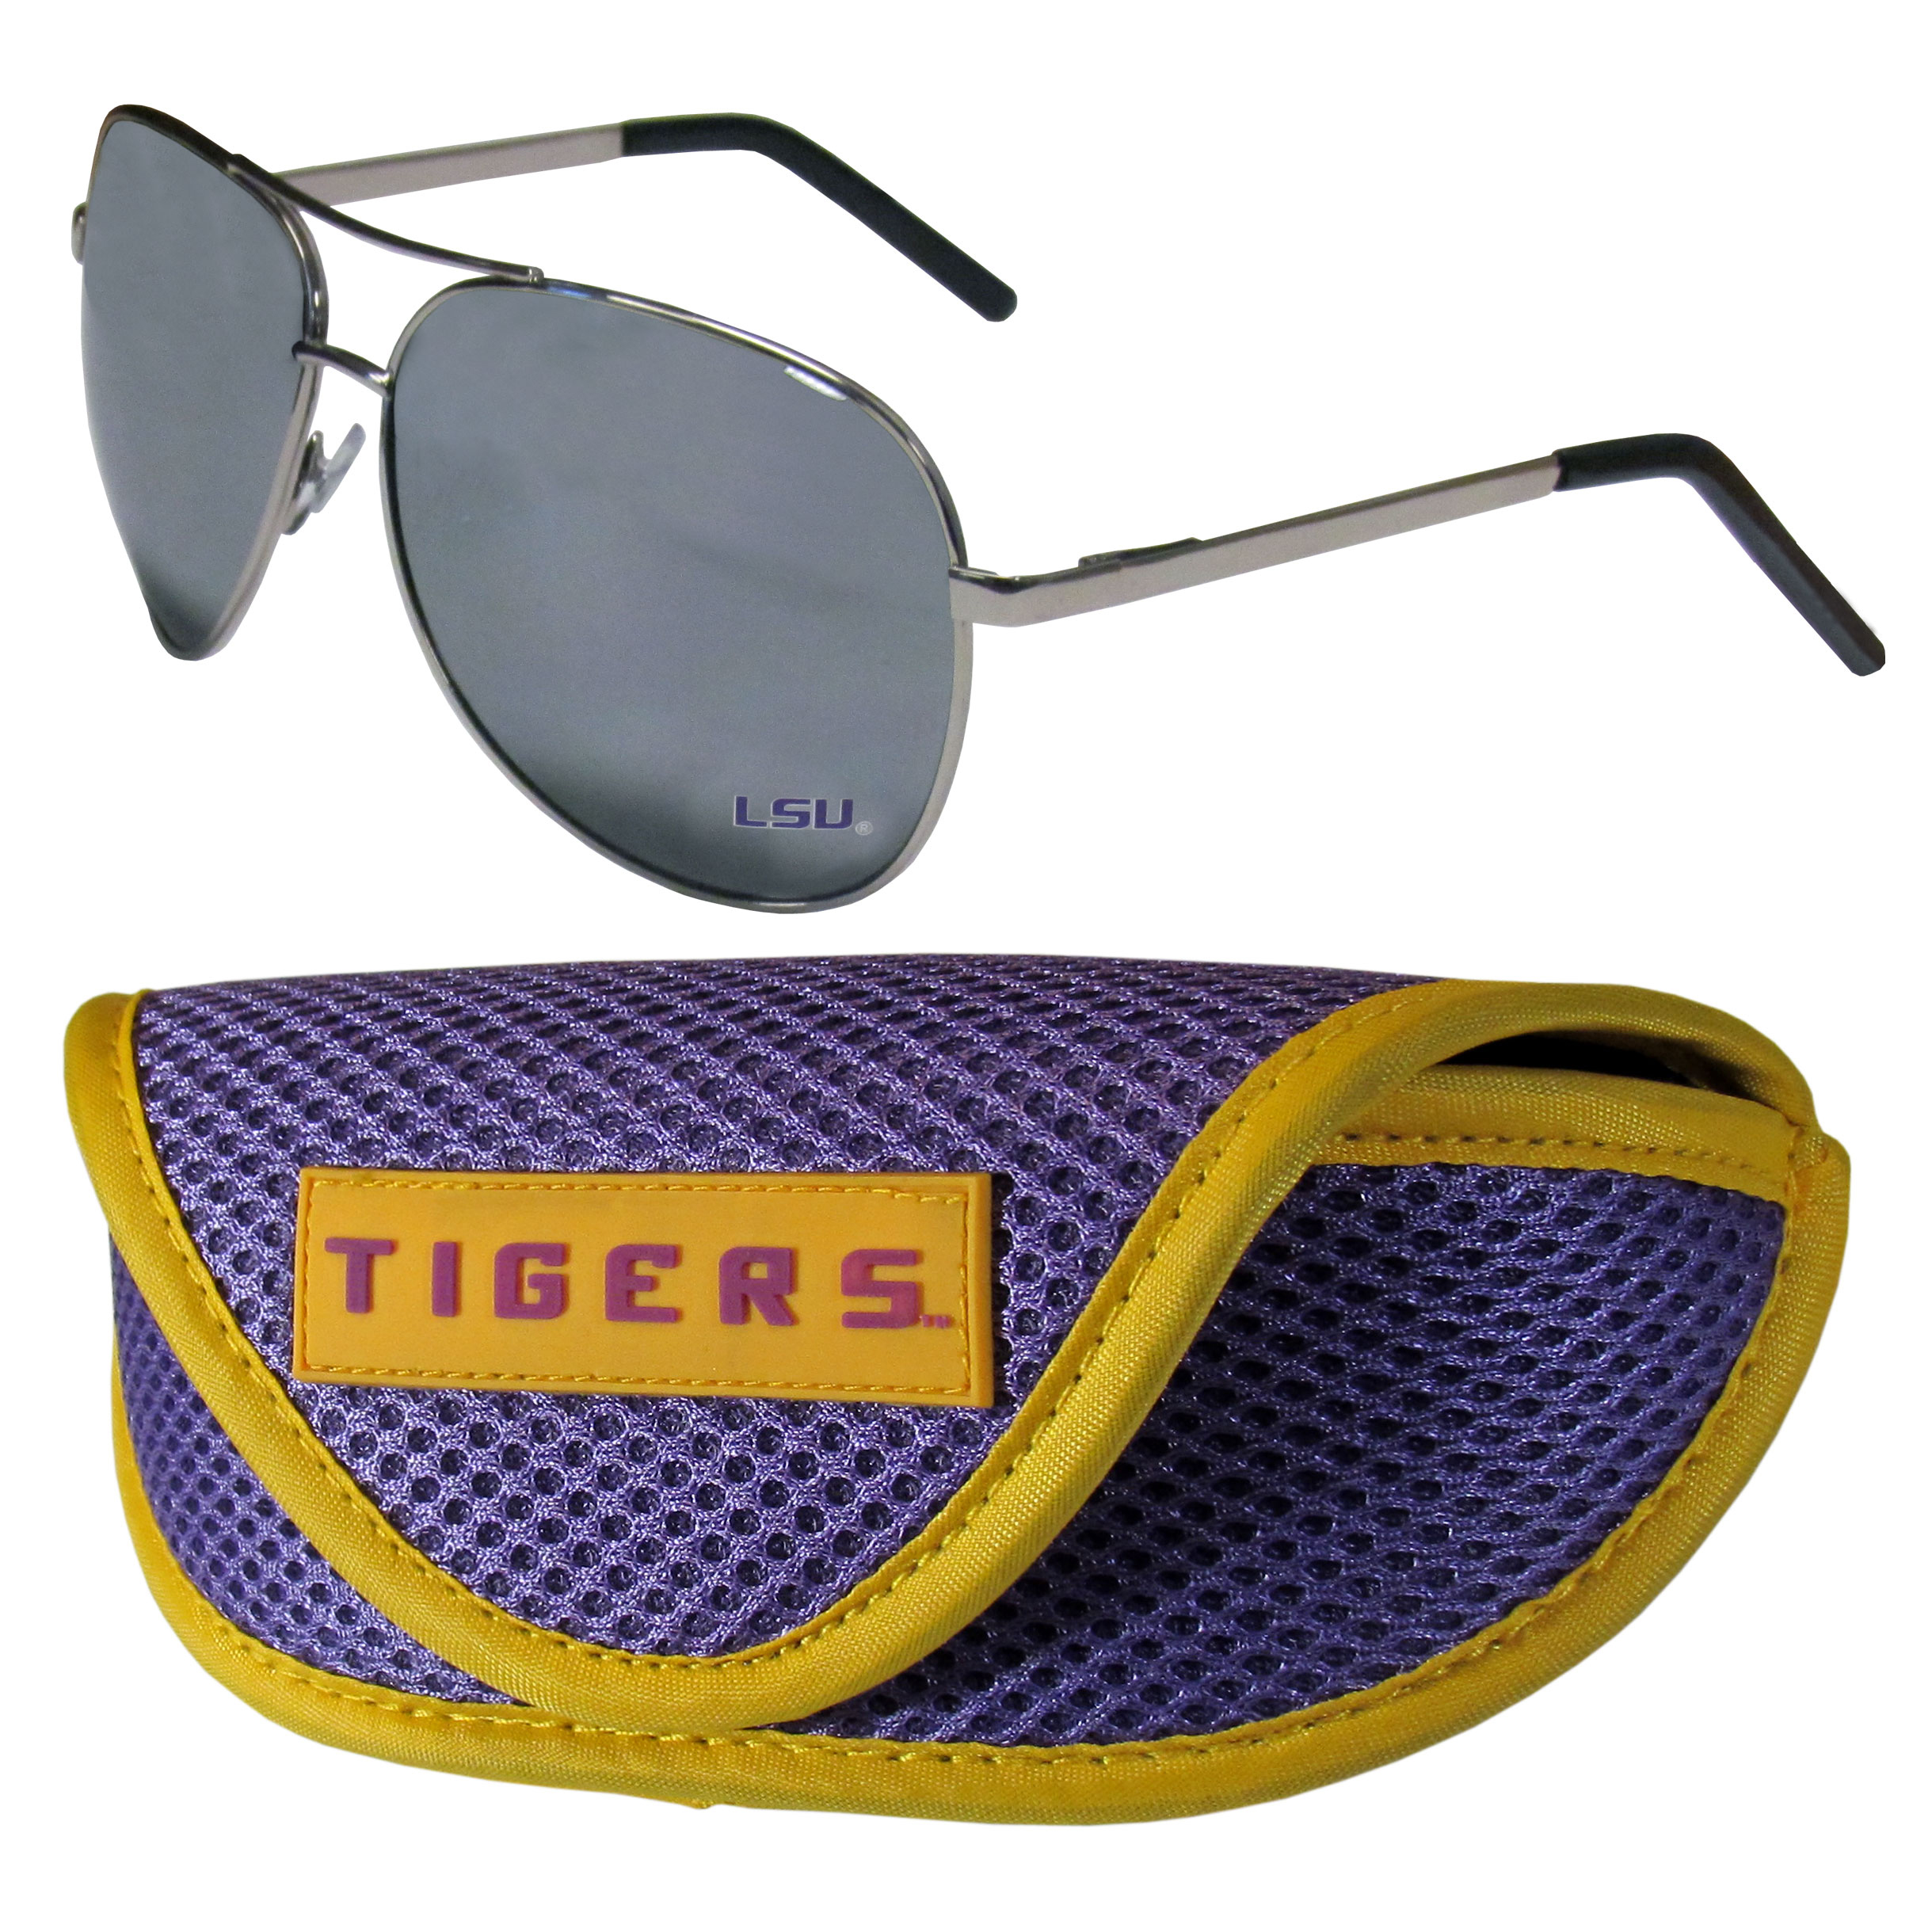 LSU Tigers Aviator Sunglasses and Sports Case - Aviator sunglasses are truly an iconic retro fashion statement that never goes out-of-style. Our LSU Tigers  aviator sunglasses pair this classic look with your love of the game. The iridium coated lenses reduce glare while driving, boating, golfing and their 100% UVA/UVB rating provides you with the maximum UV protection for all your outdoor activities. A millennial favorite, these affordable designer frames are the perfect eyewear accessory for a sports fan that is looking for high-quality at an affordable price. The durable, flex hinged frames are tough enough for hiking and camping or if you prefer sun bathing by the pool or on the beach these shades will really stand the test of time. The sunglasses come with a sporty case which has a large team logo on the lid that will make even the most die-hard fan proud!